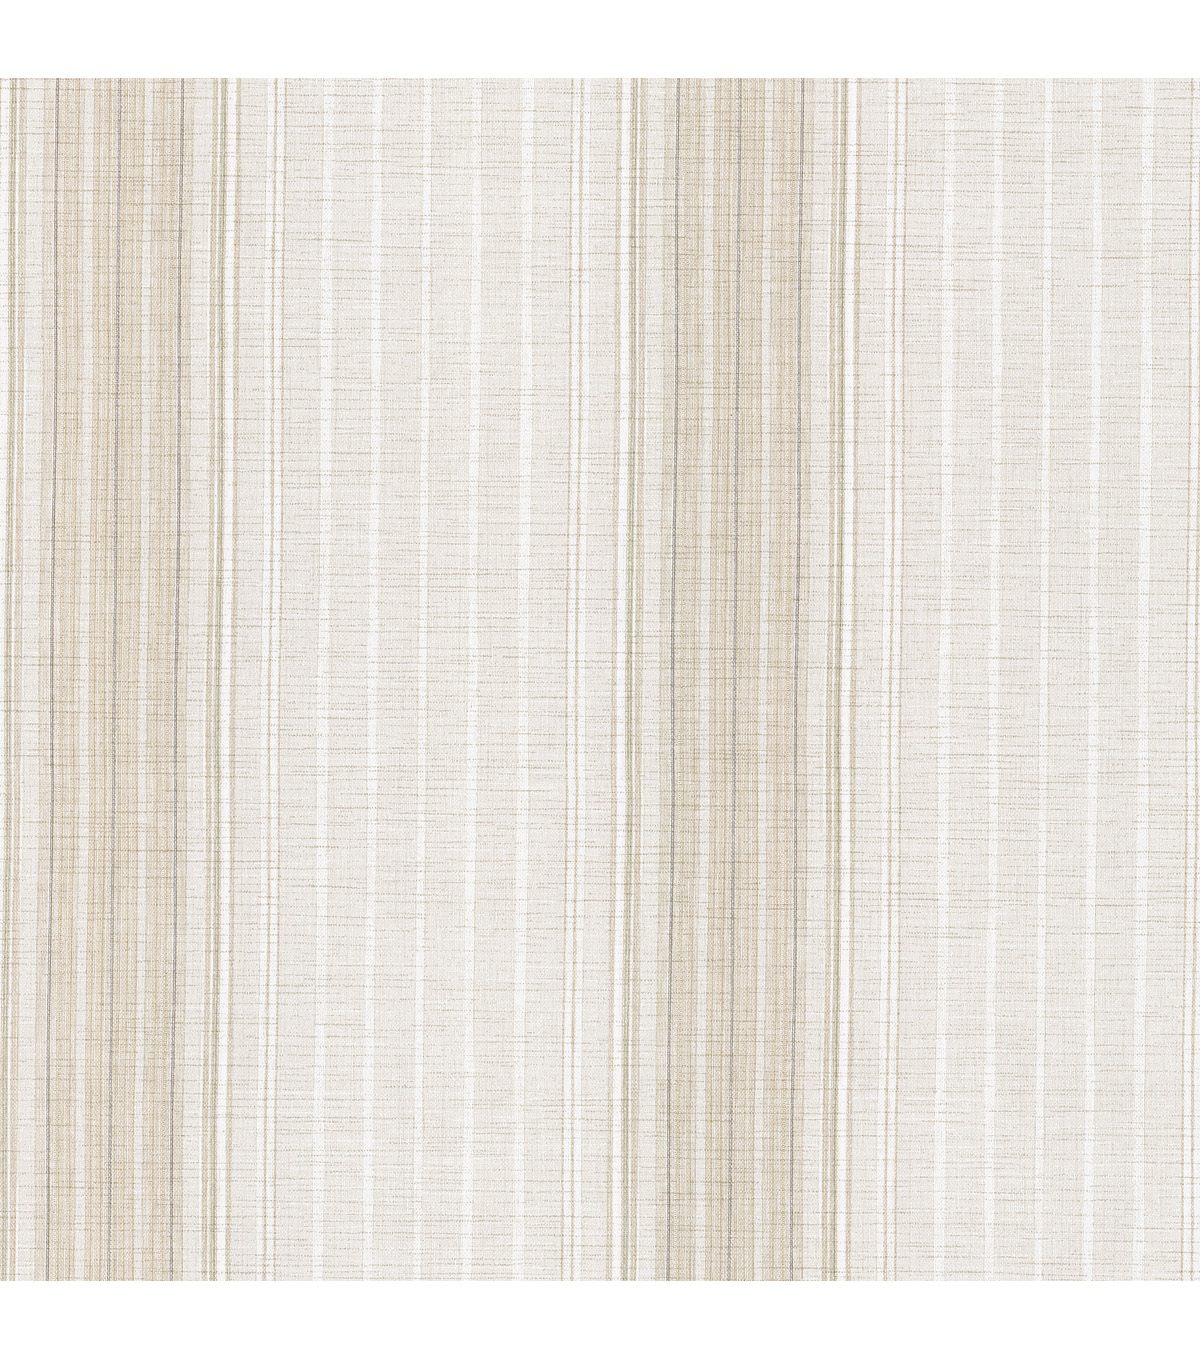 Natuche Light Grey Linen Stripe Wallpaper